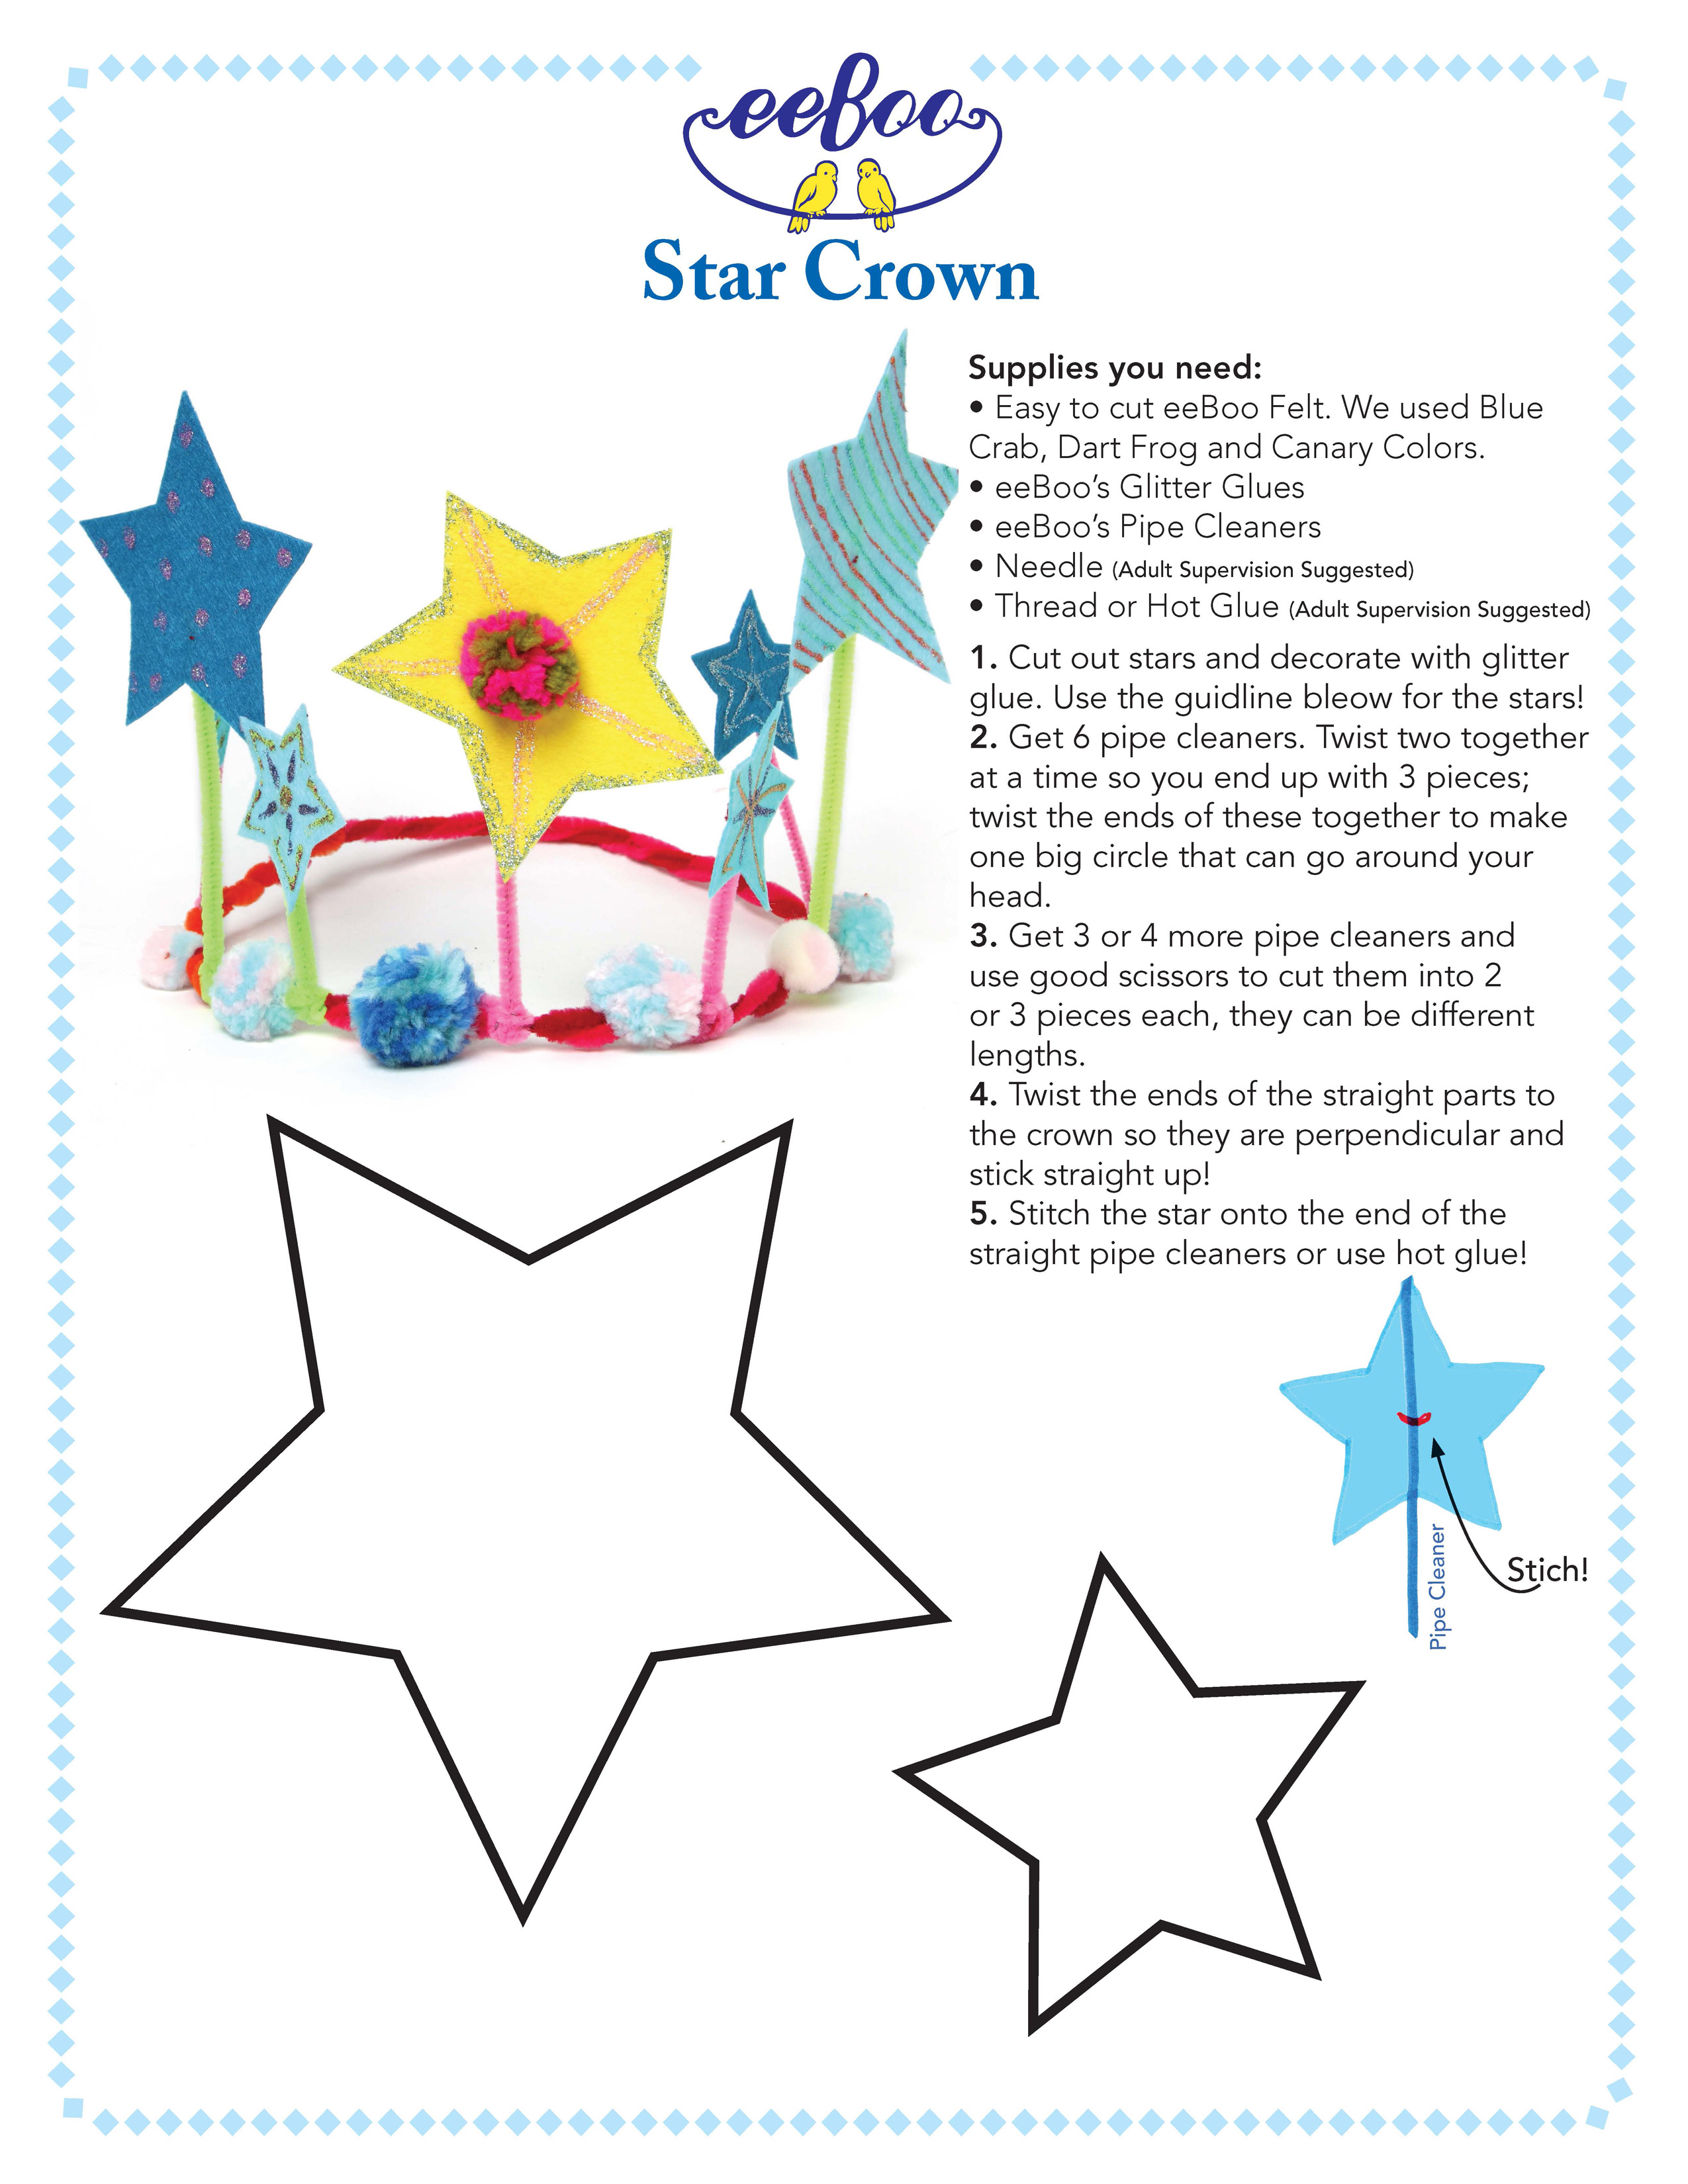 Star Shape Template To Cut Out Diy star crown. print this out